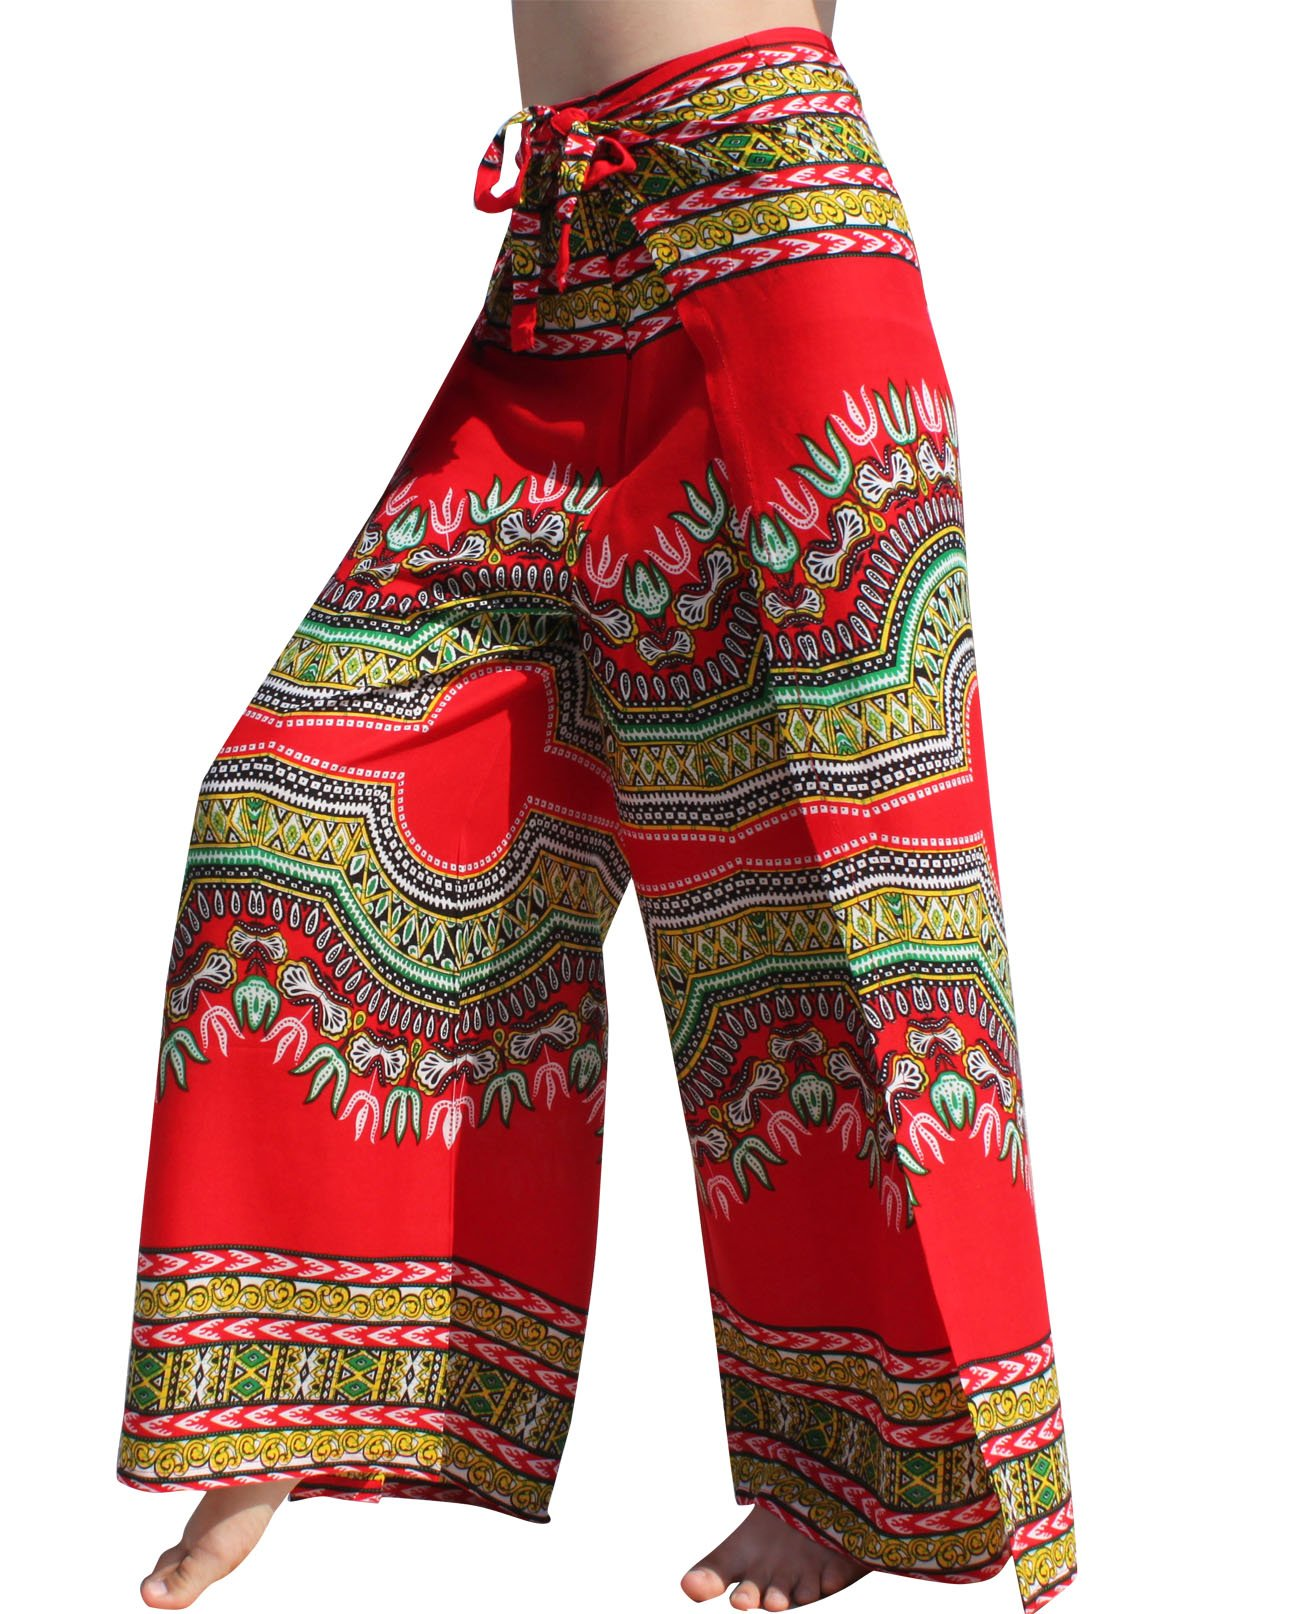 Raan Pah Muang RaanPahMuang Silky Rayon Drive In Wrap Pants Light African Dashiki Art Viscose, X-Large, Red